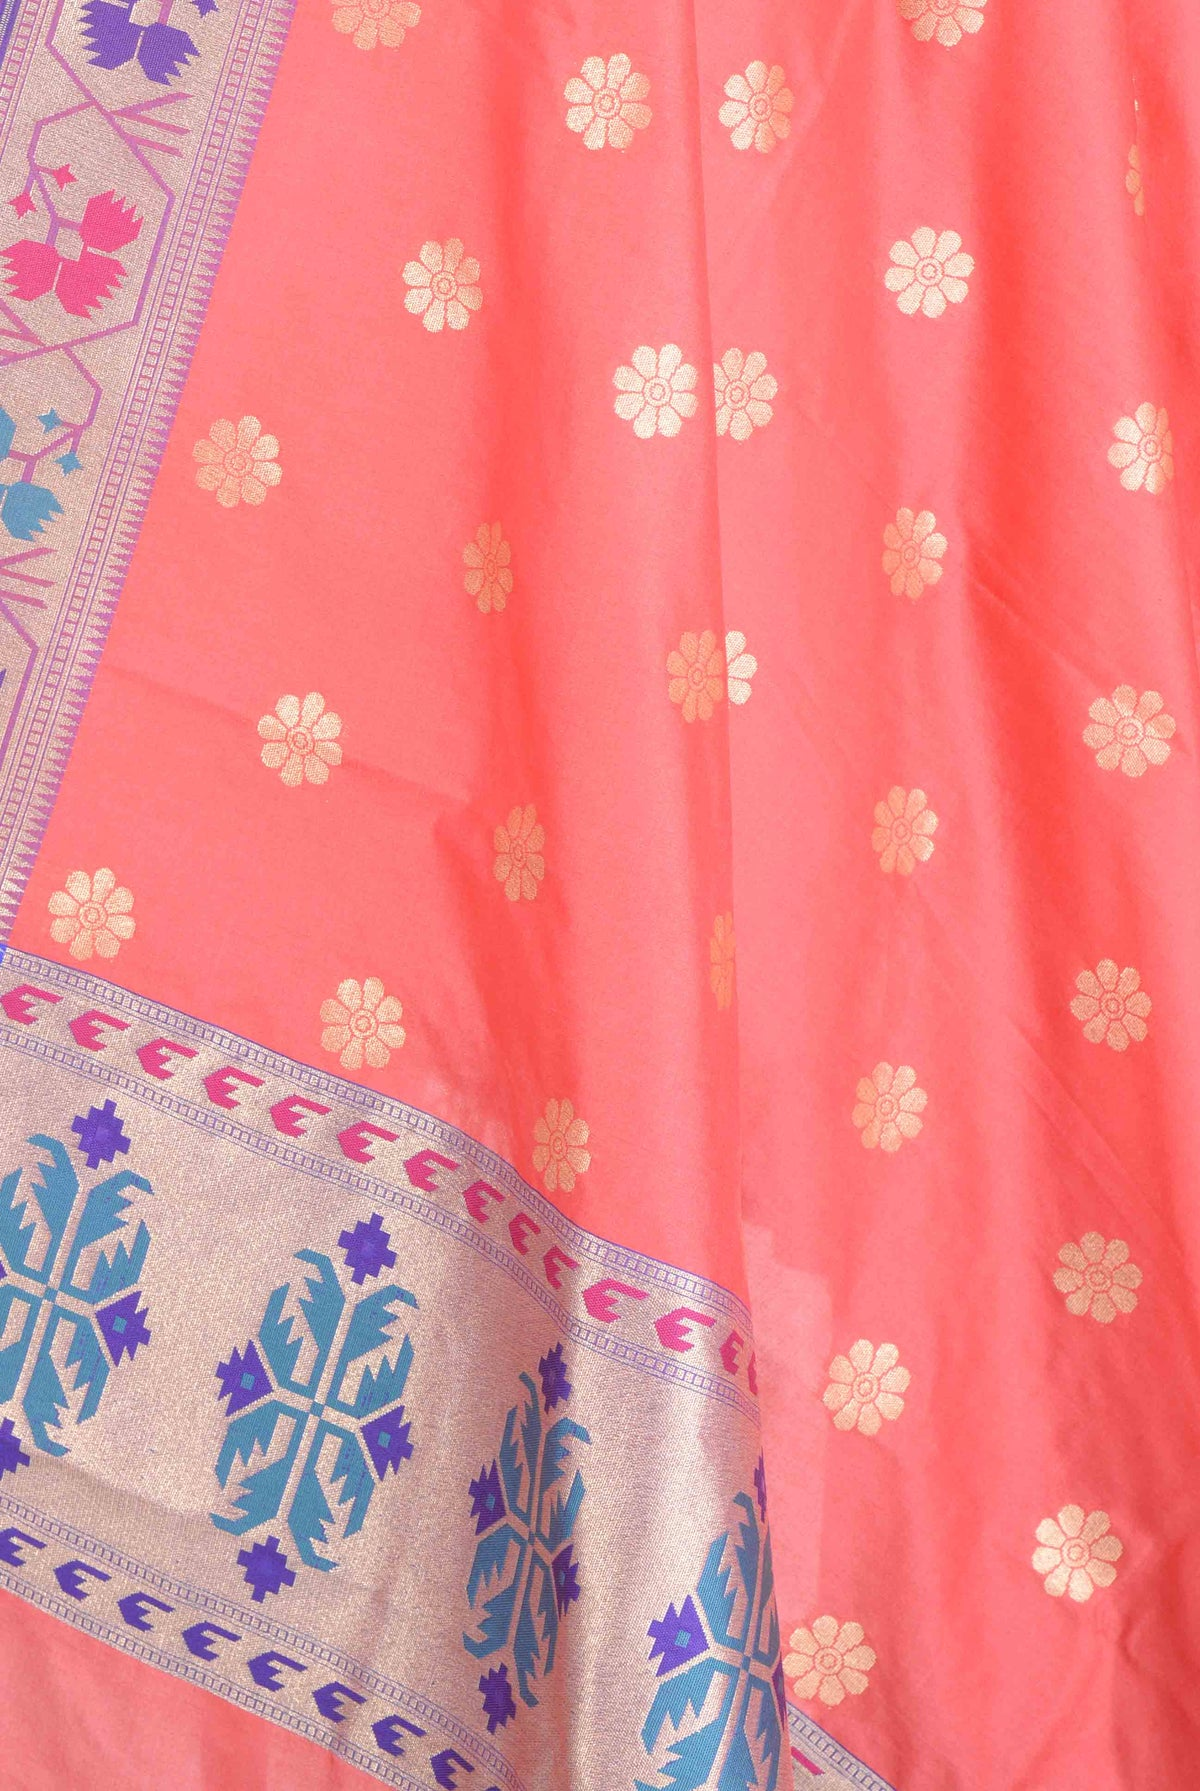 Peach Banarasi Dupatta with multi color border with floral motif (2) Closeup